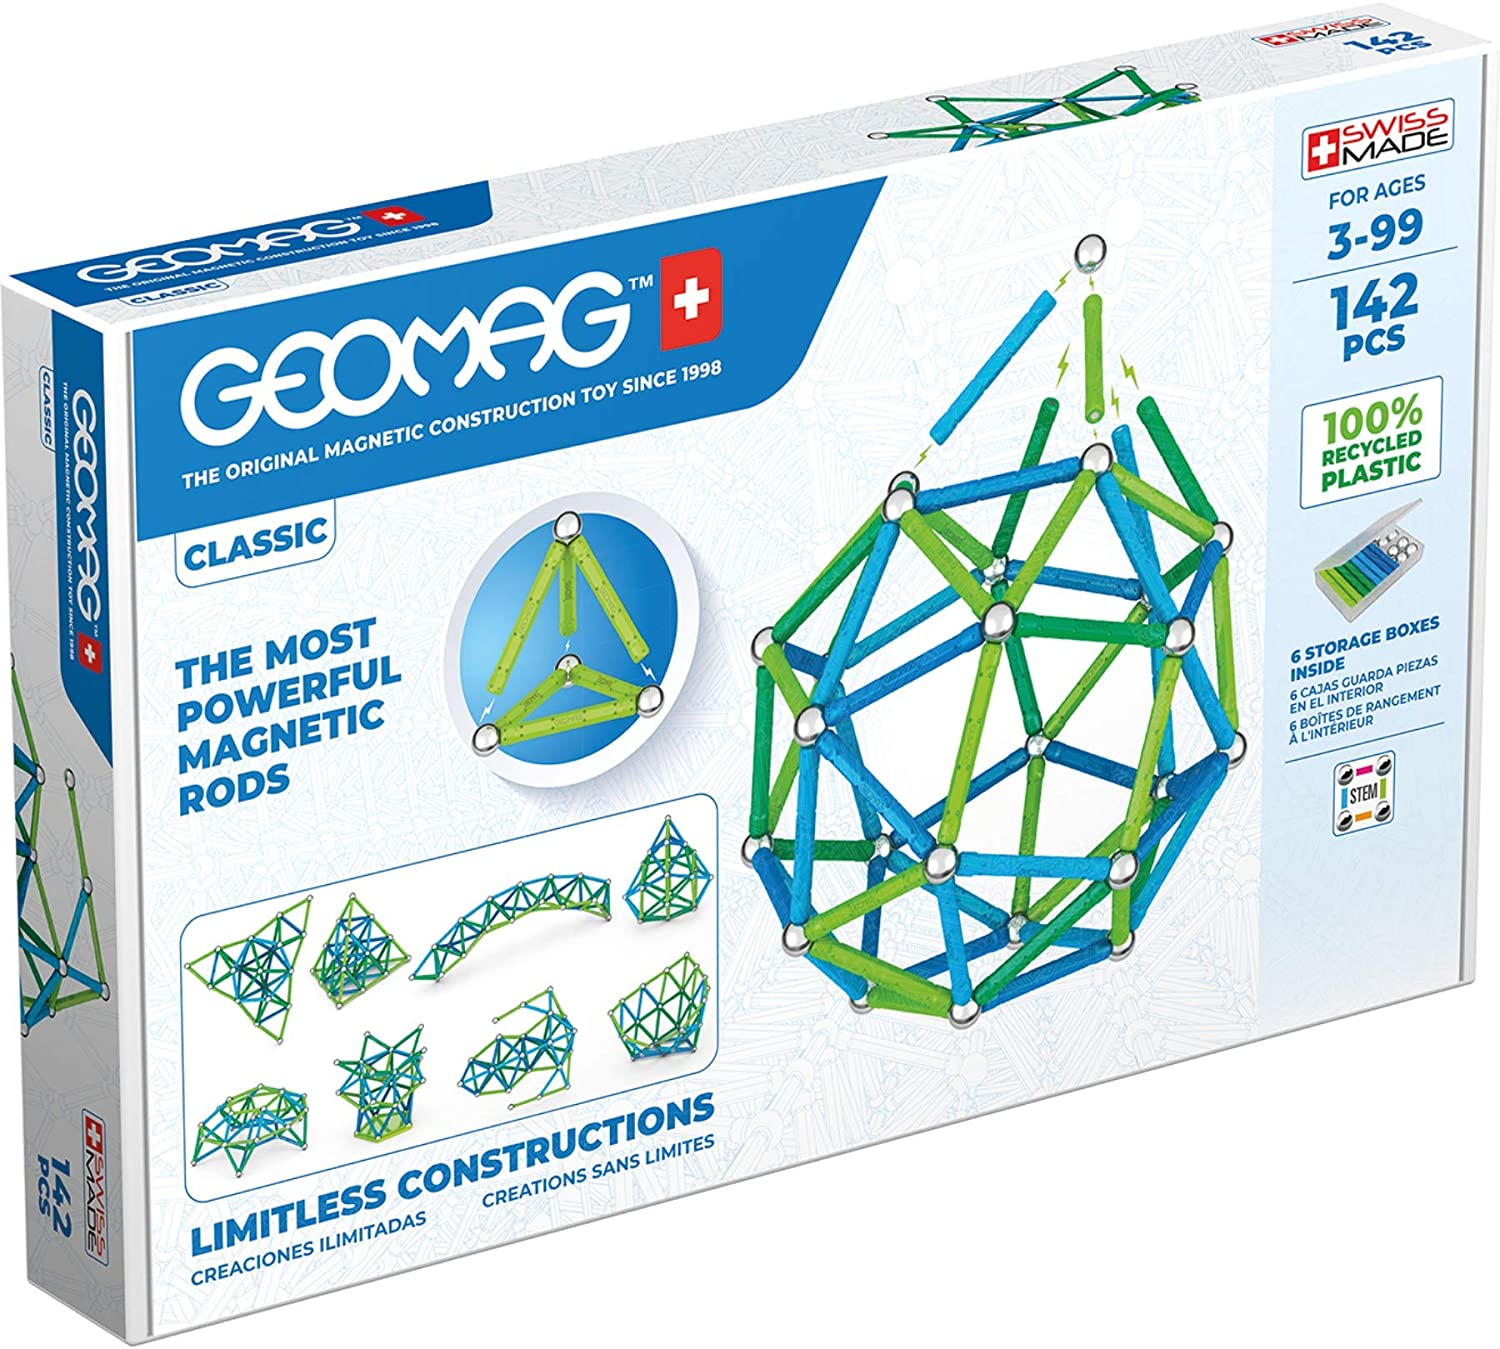 Geomag Magnetic Sticks and Balls Building Set, $20-79 (depending on set size) @amazon.com